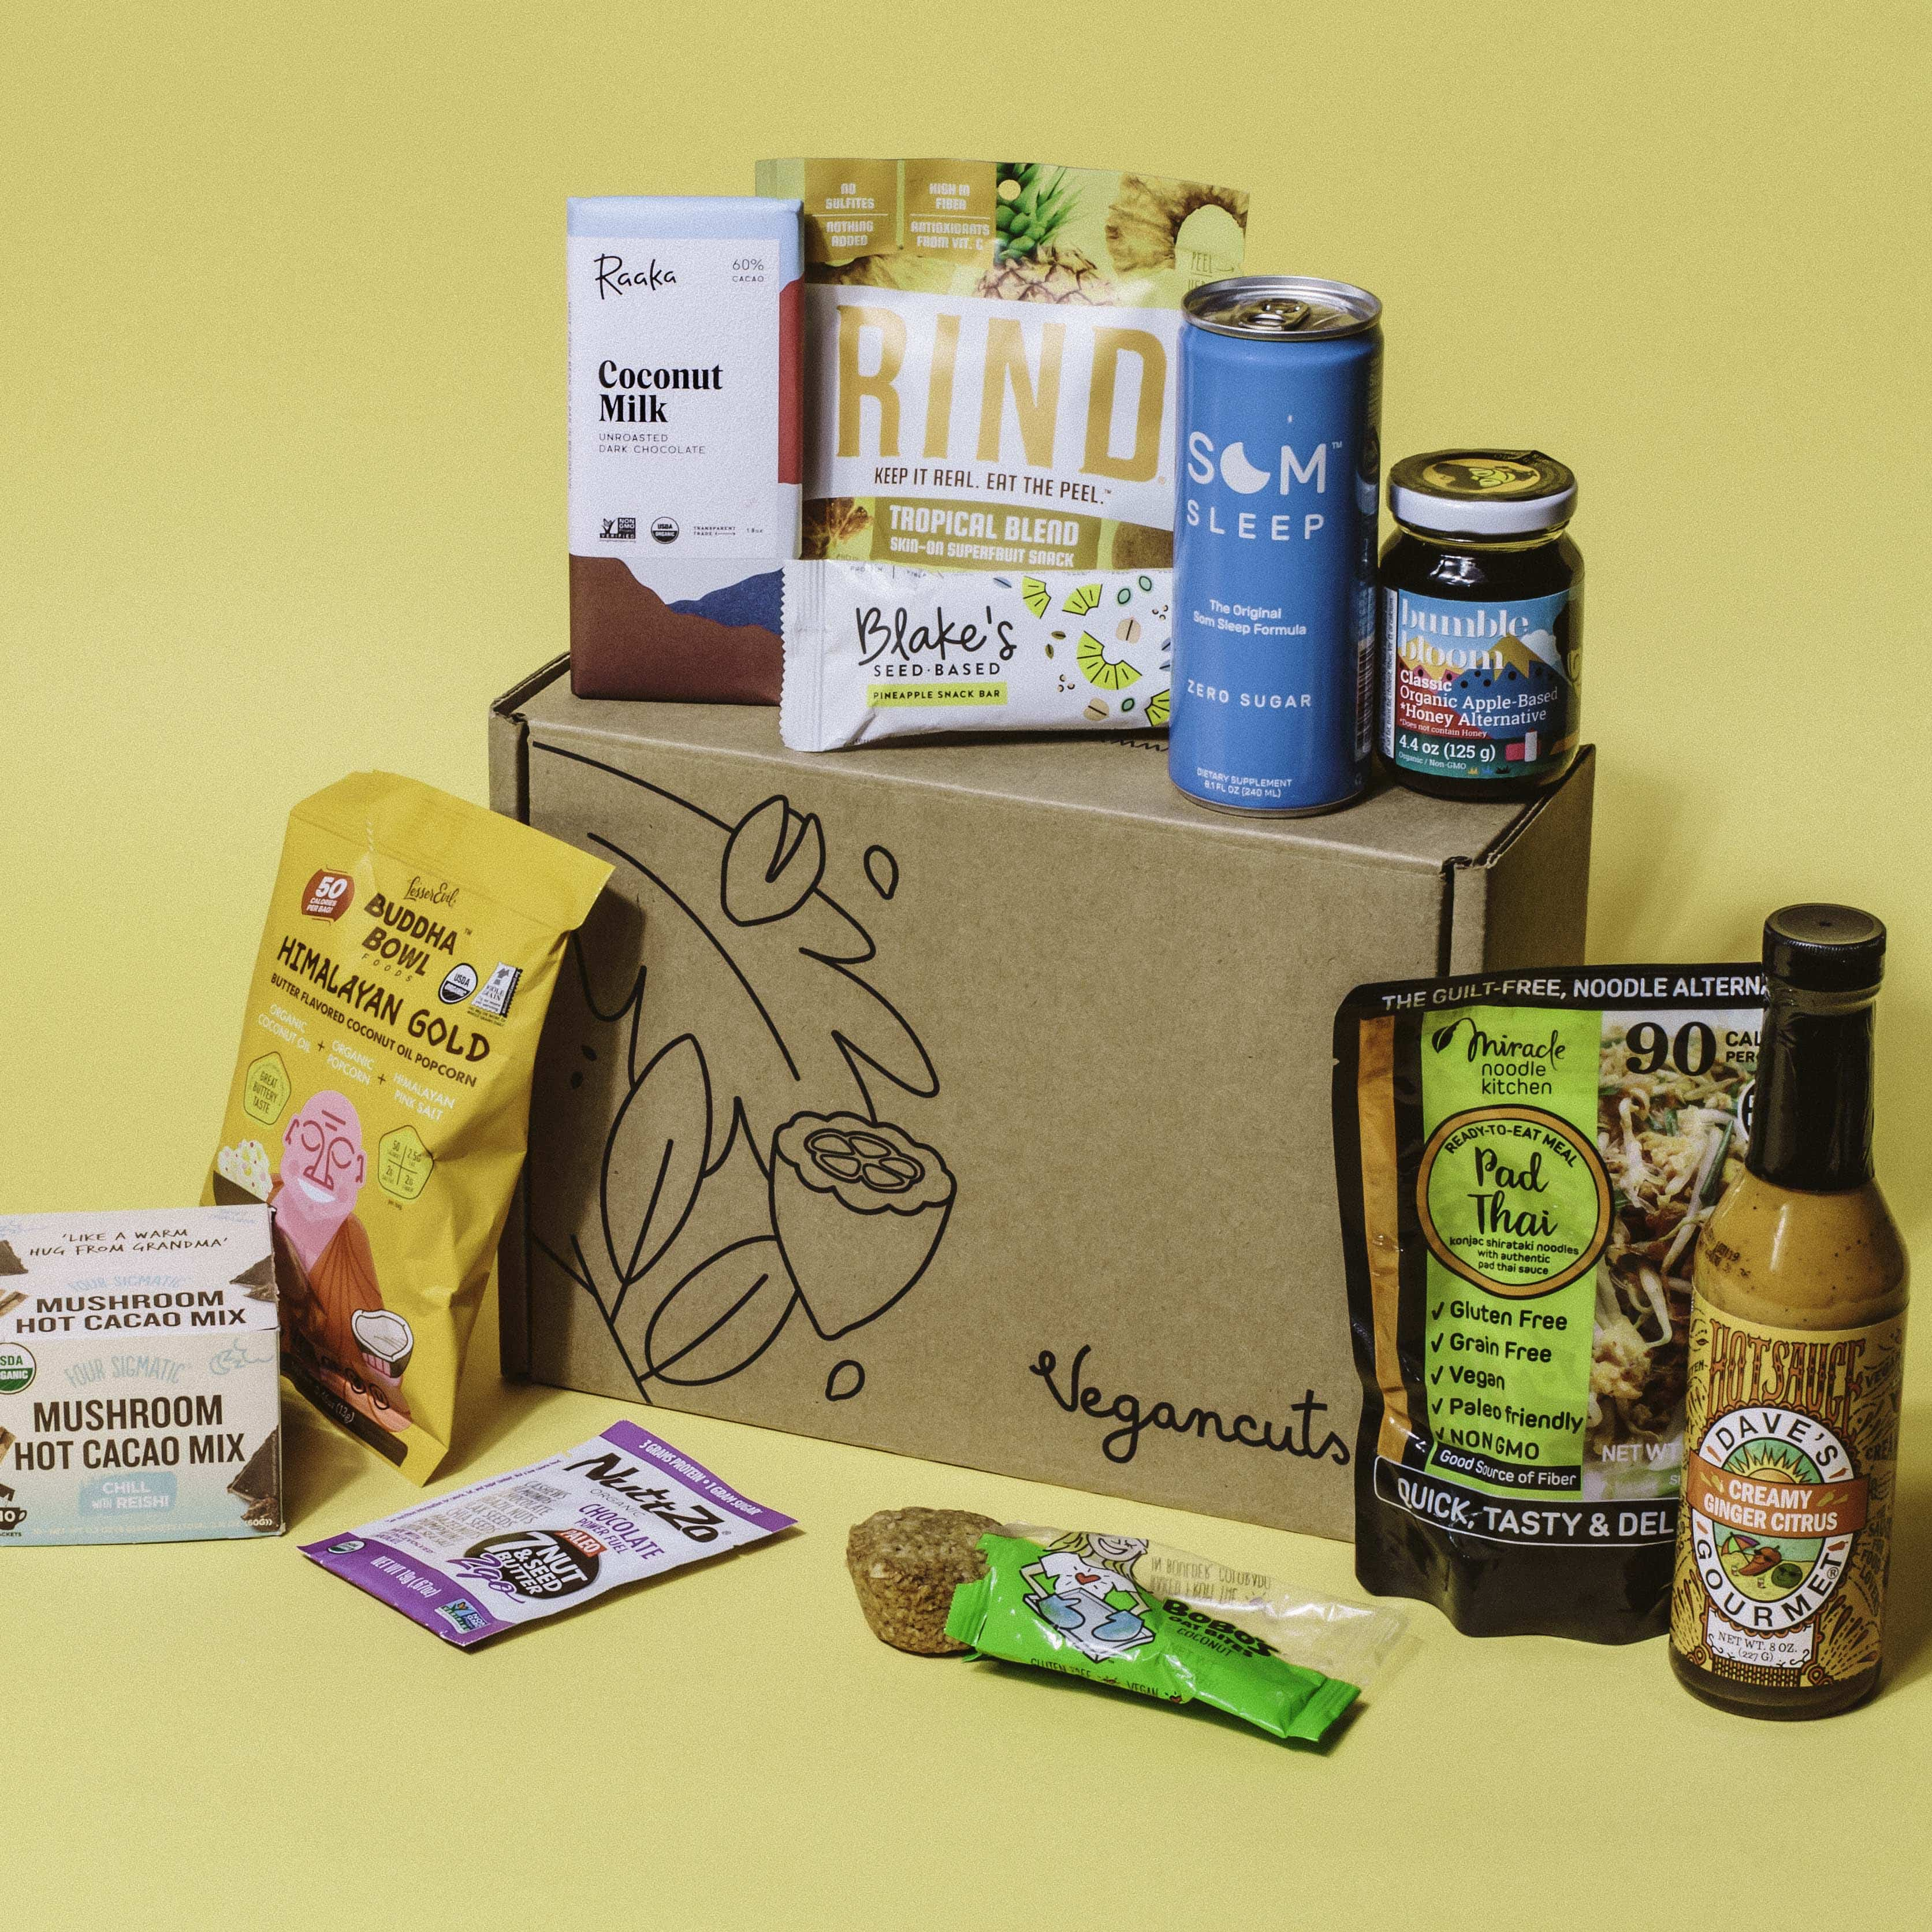 Vegancuts August 2019 Snack Box Spoilers!